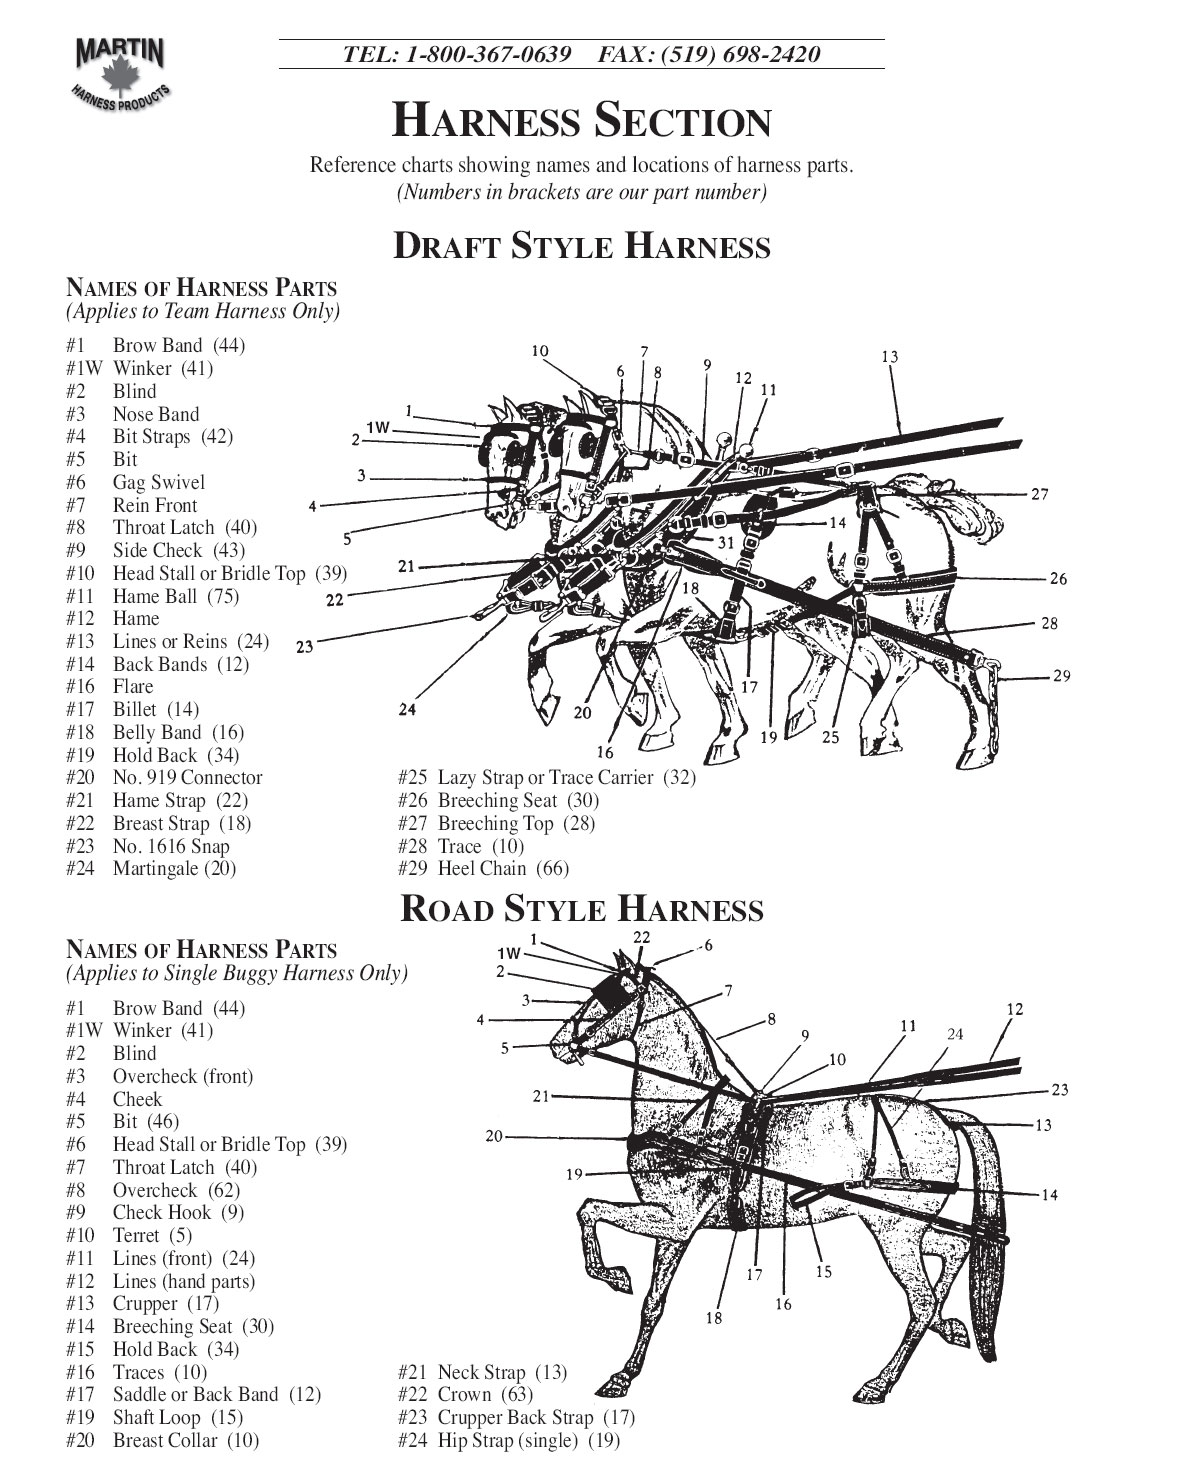 Glossary of Harness Parts